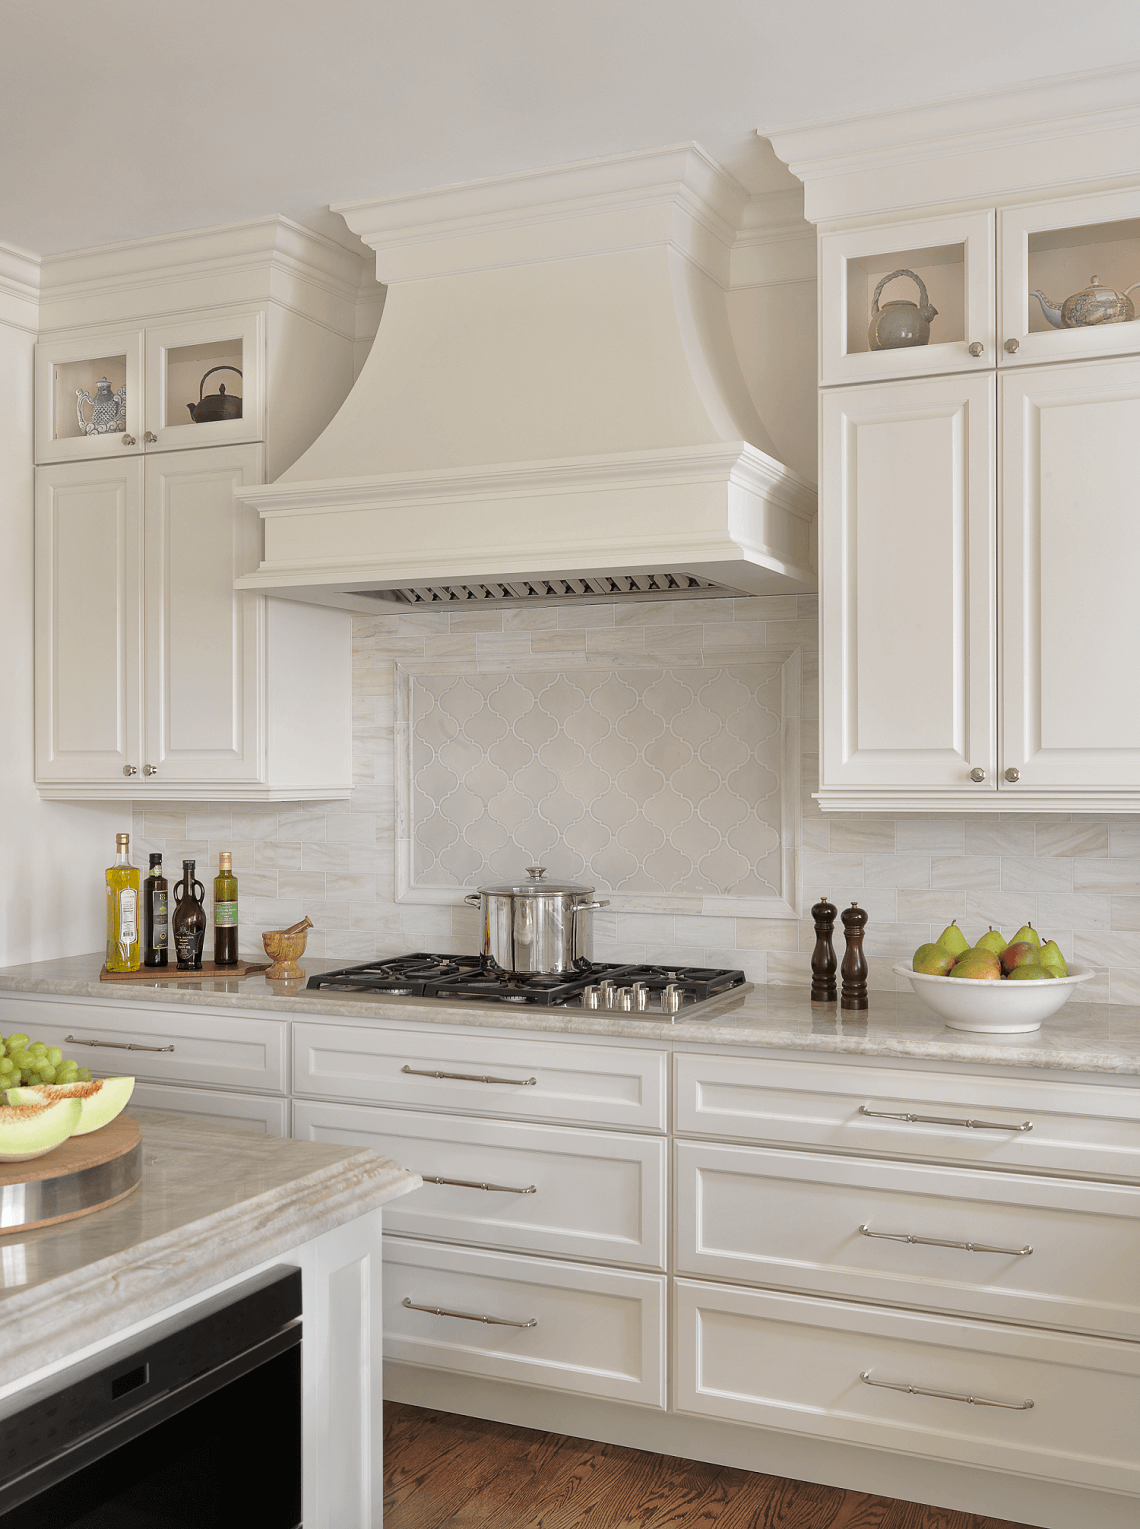 This traditional kitchen renovation paired custom white